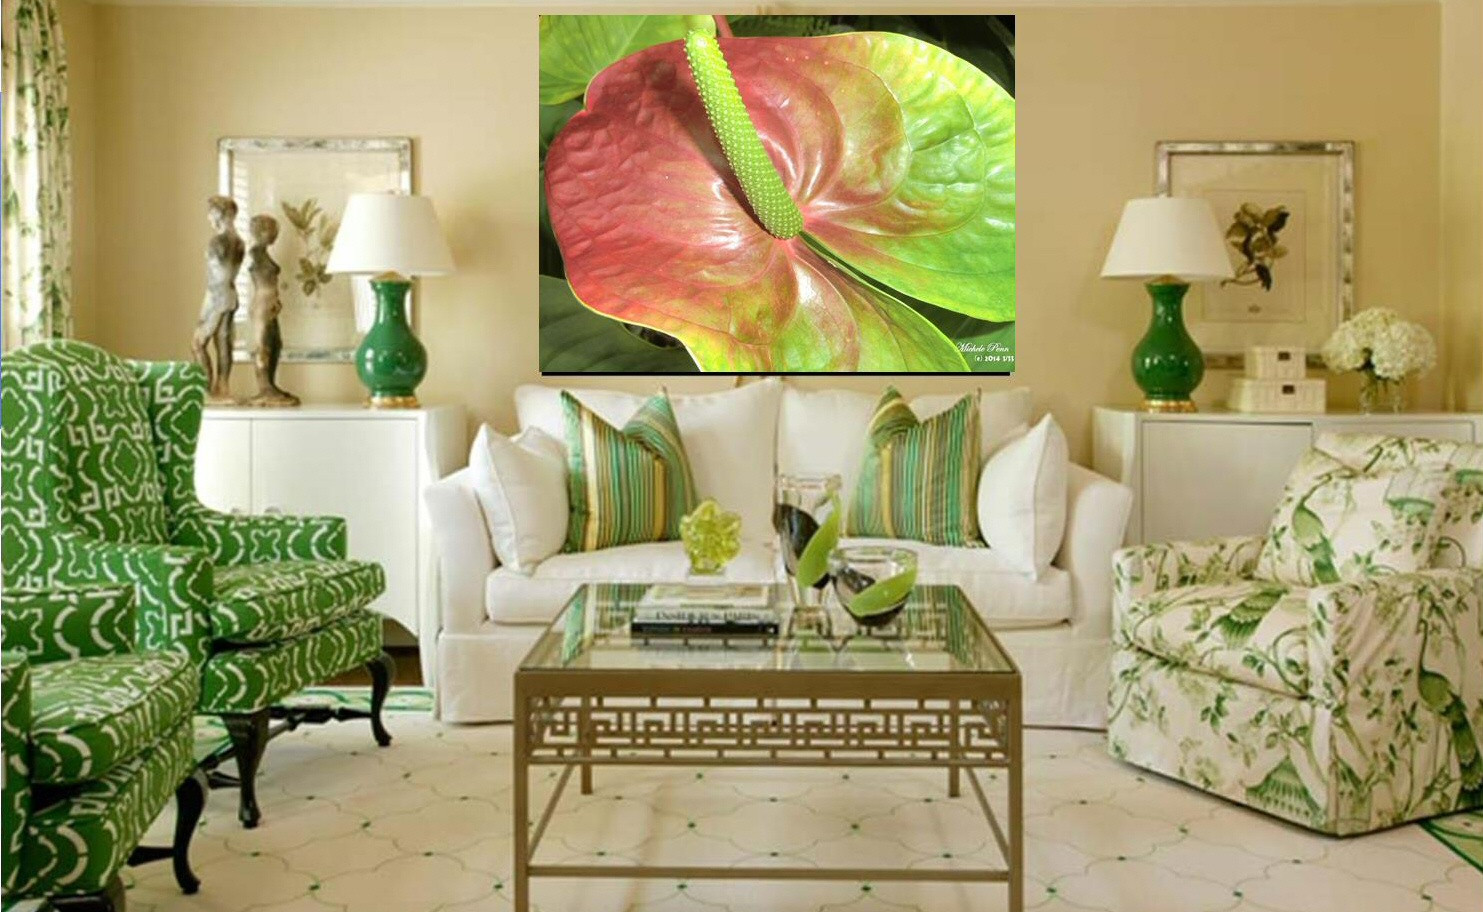 Green Anthurium Glory Limited Edition of 33